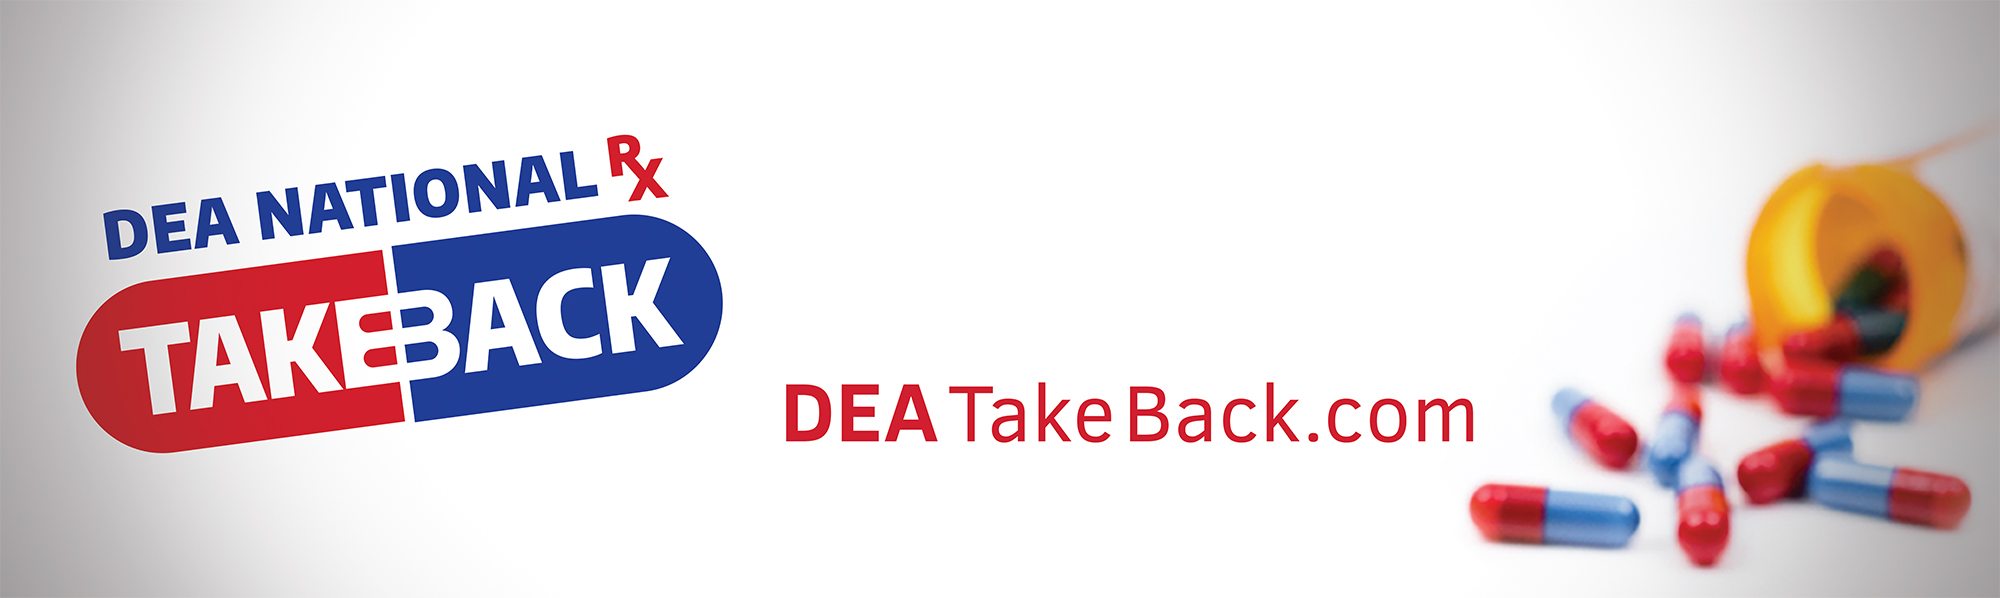 Dea Takeback2018 Customprintbillboard 48x14 Eng Quartbleed